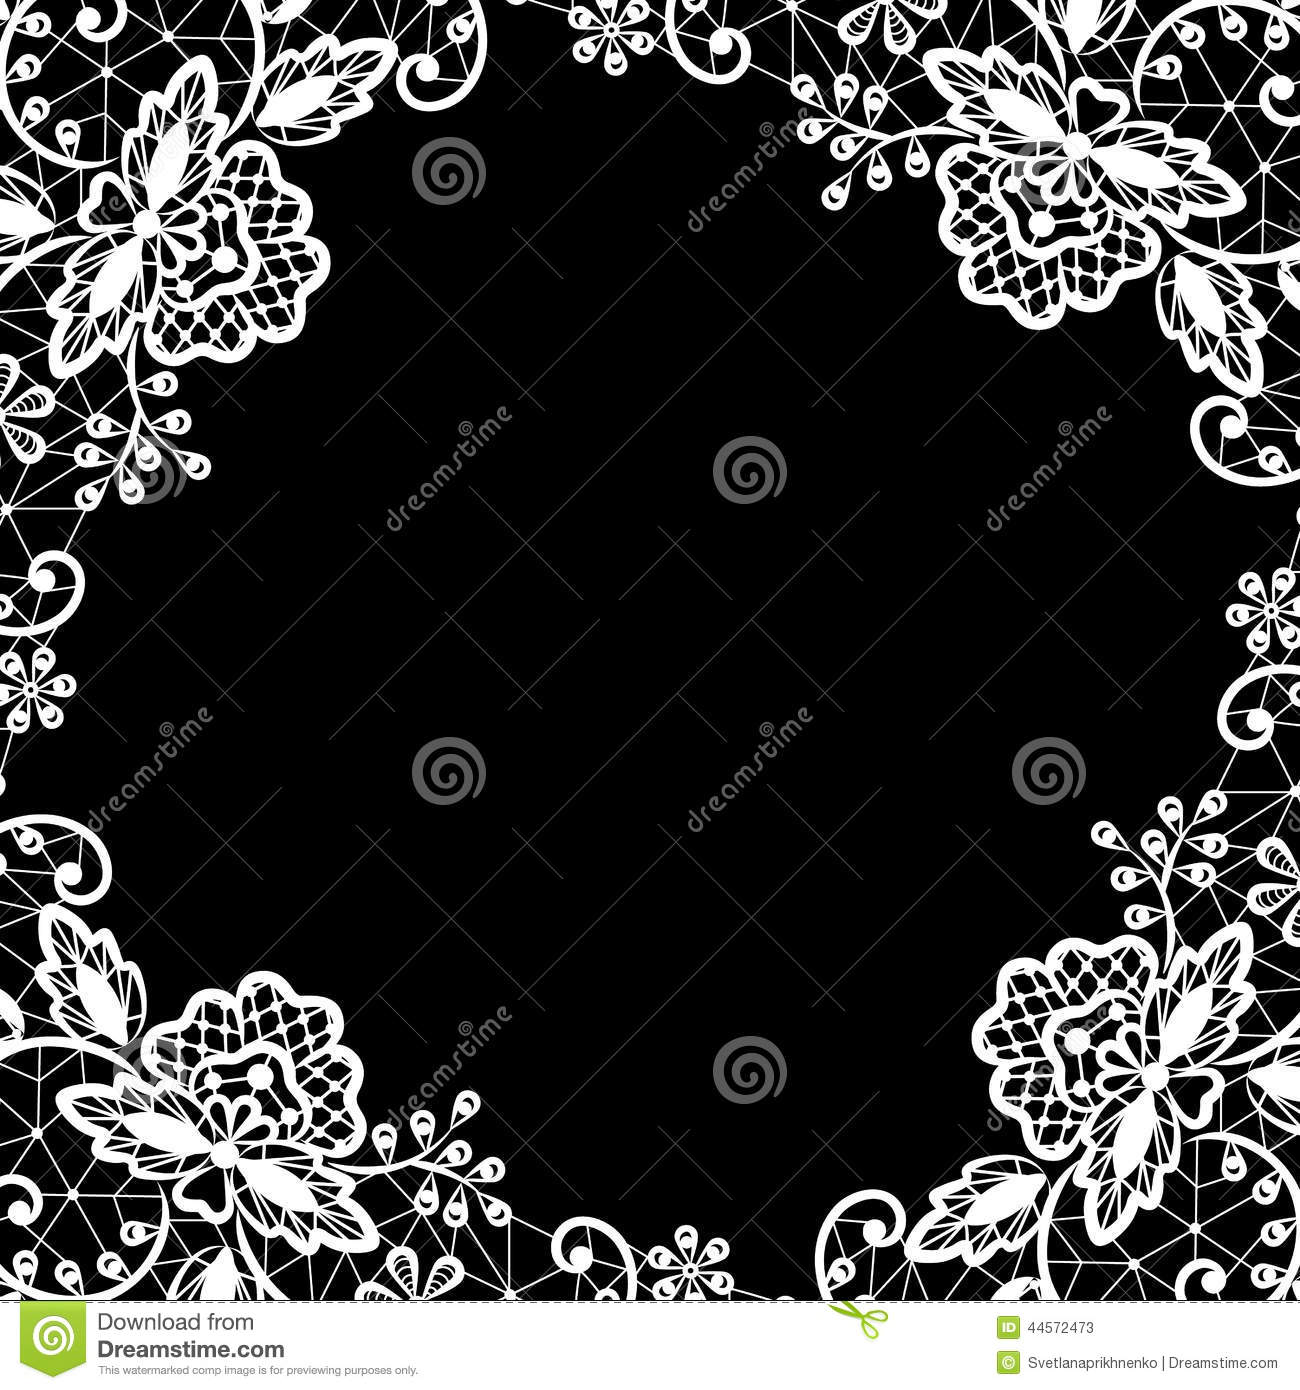 Lace On Black Background Stock Vector  Image 44572473. Claw Design Engagement Rings. Hipster Wedding Engagement Rings. Hollow Rings. Kansas Jayhawks Rings. Earthy Engagement Rings. Welded Wedding Rings. Center Wedding Rings. Mahogany Wood Wedding Rings